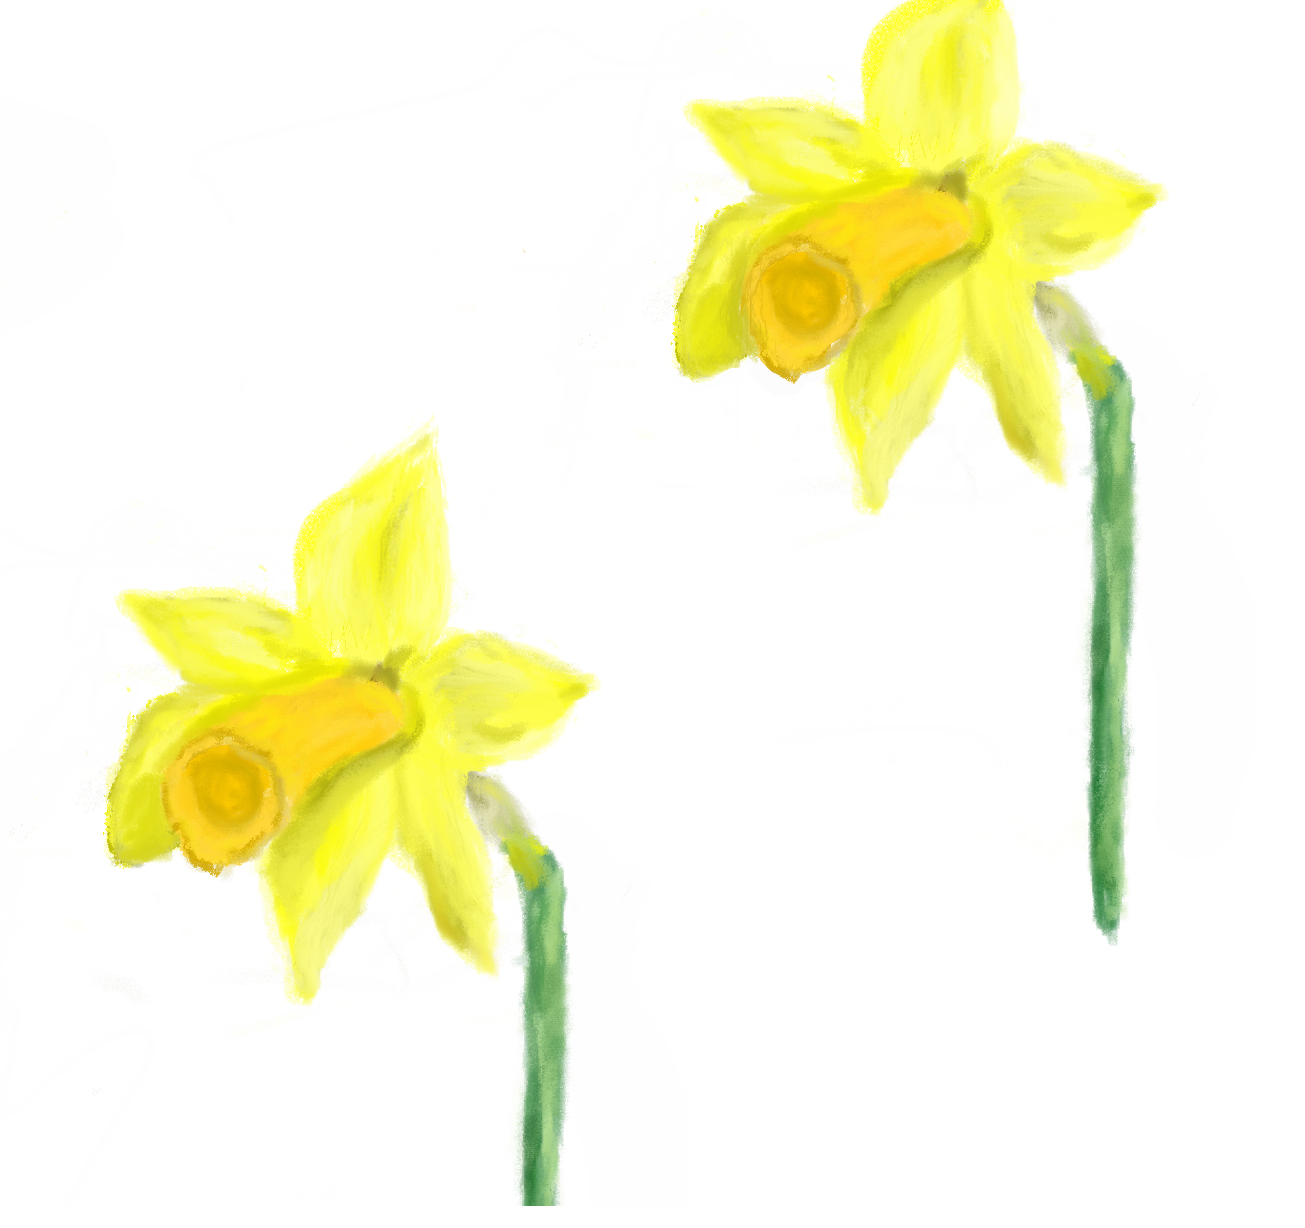 Digital painting of two yellow daffodils